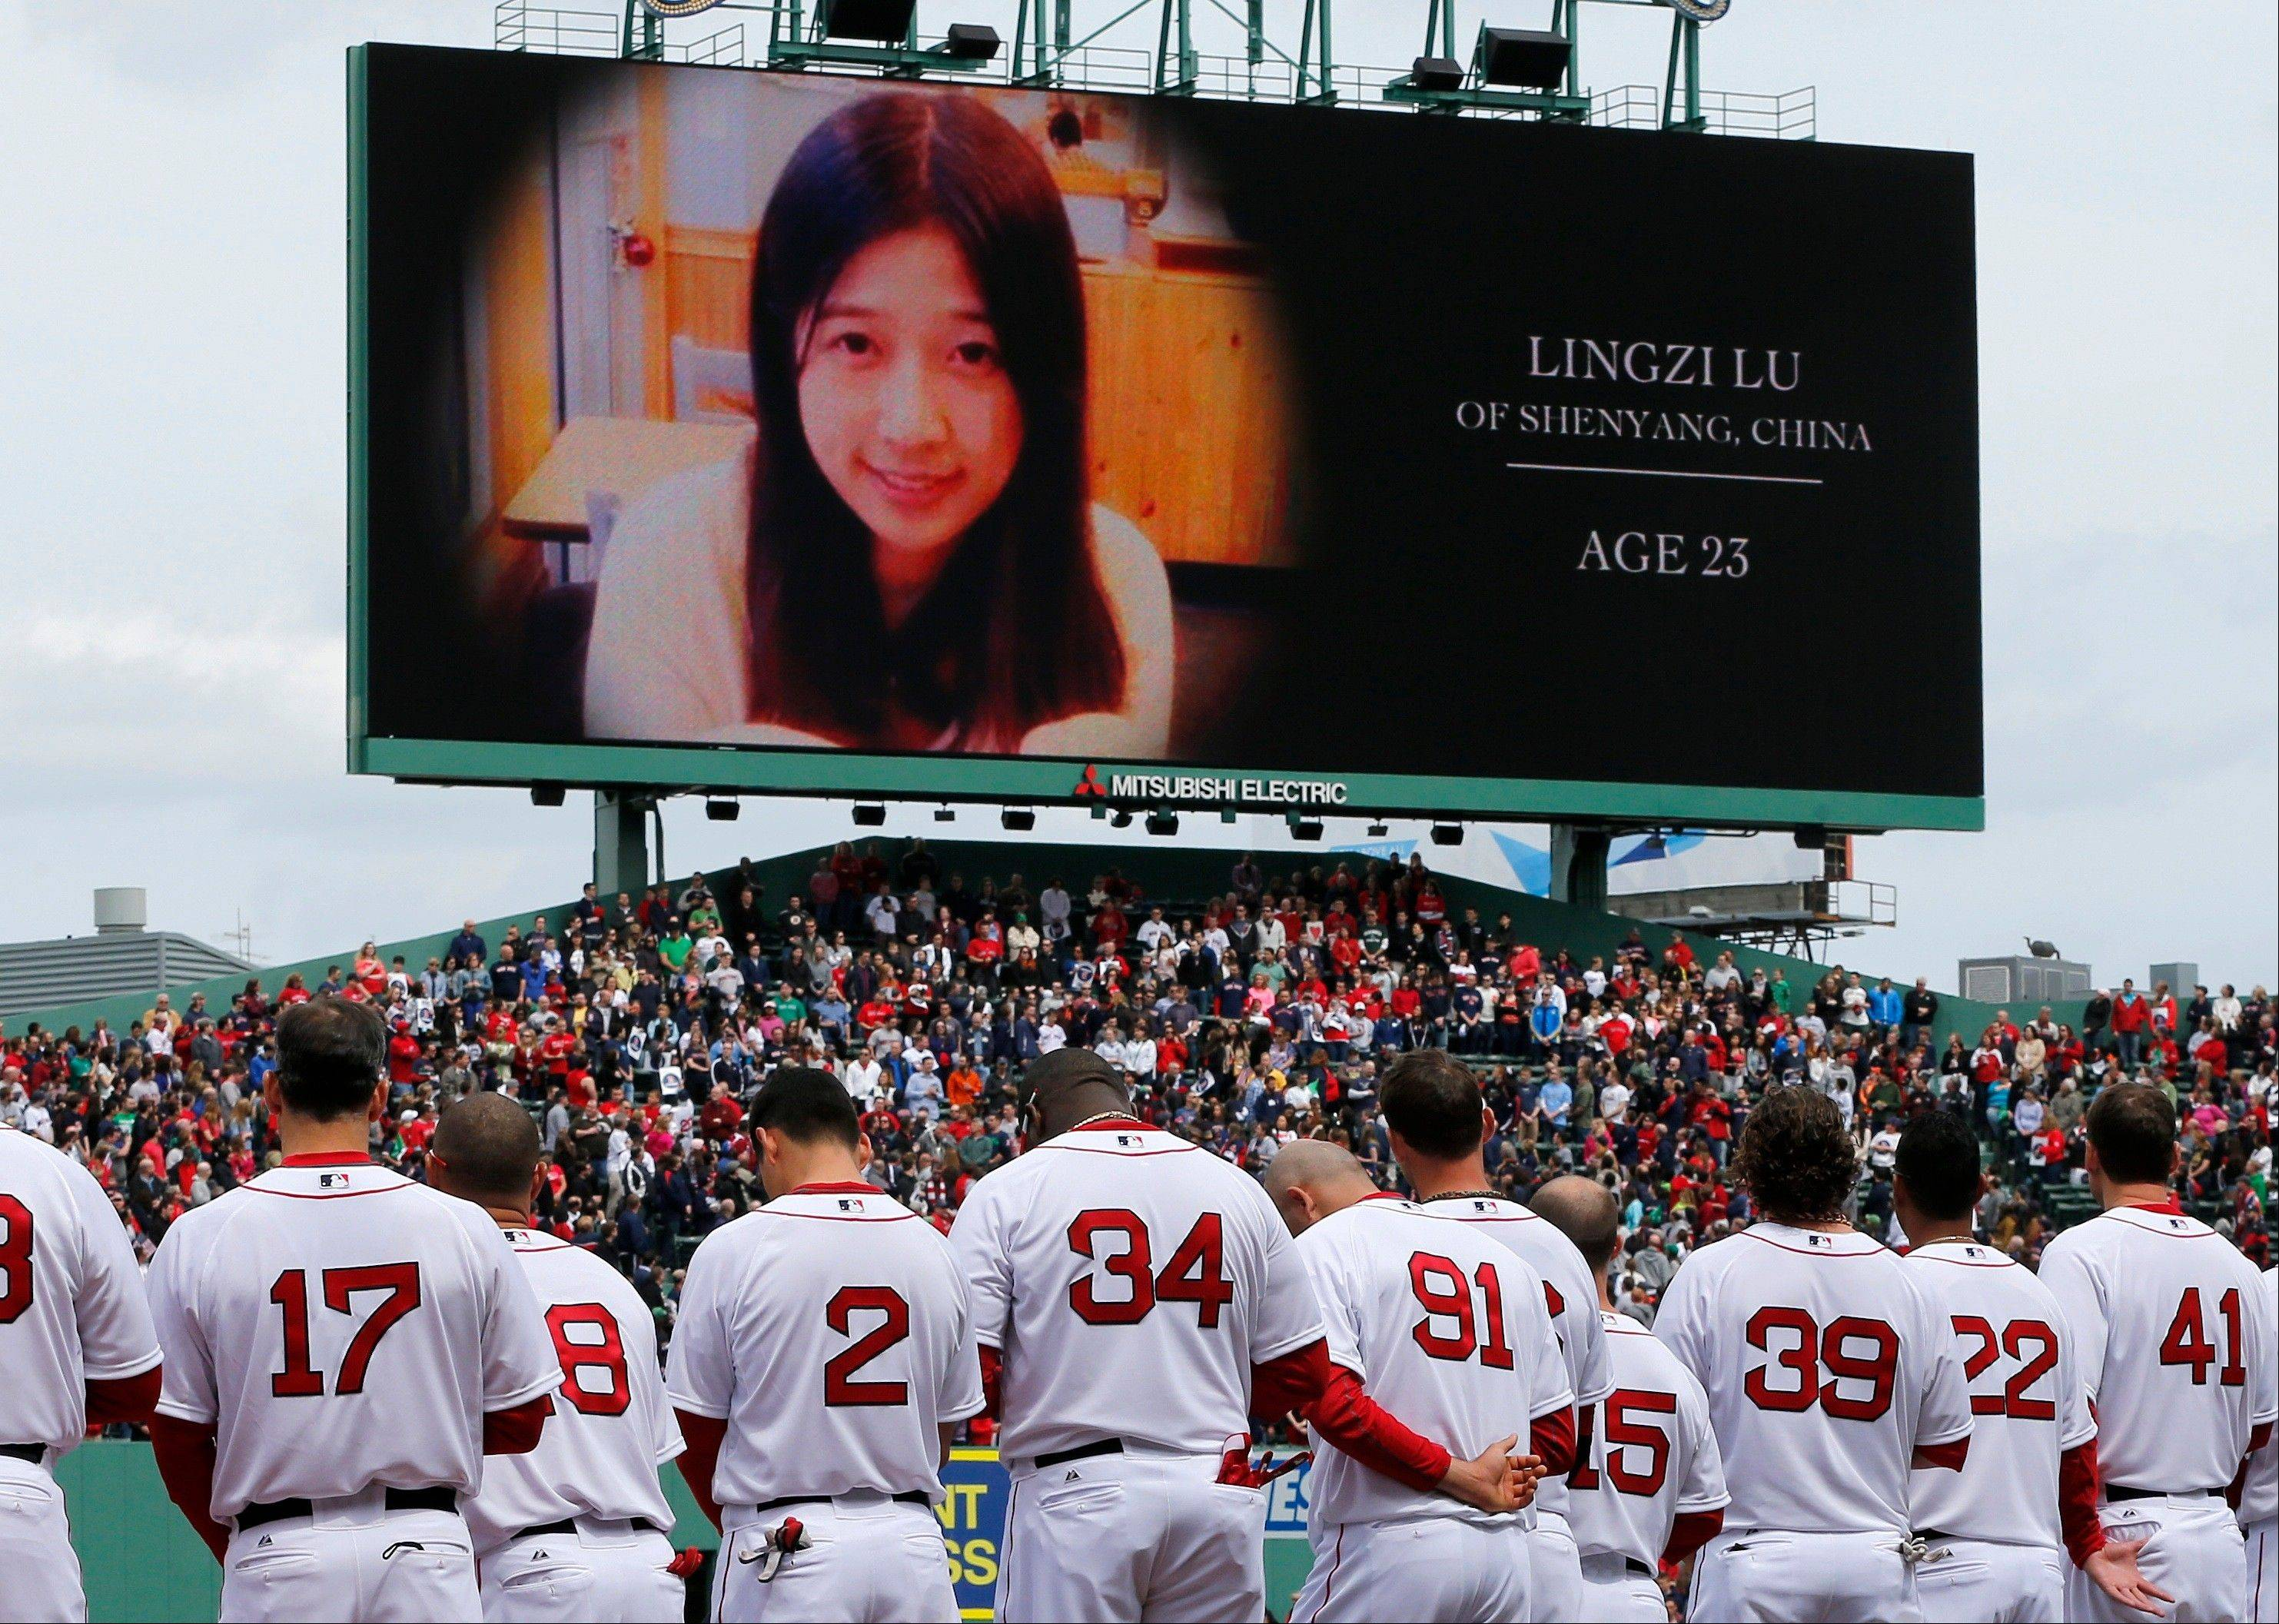 The Boston Red Sox stand during tribute to Boston Marathon bombing victims, including Chinese student Lingzi Lu, before a baseball game against the Kansas City Royals in Boston, Saturday, April 20, 2013.